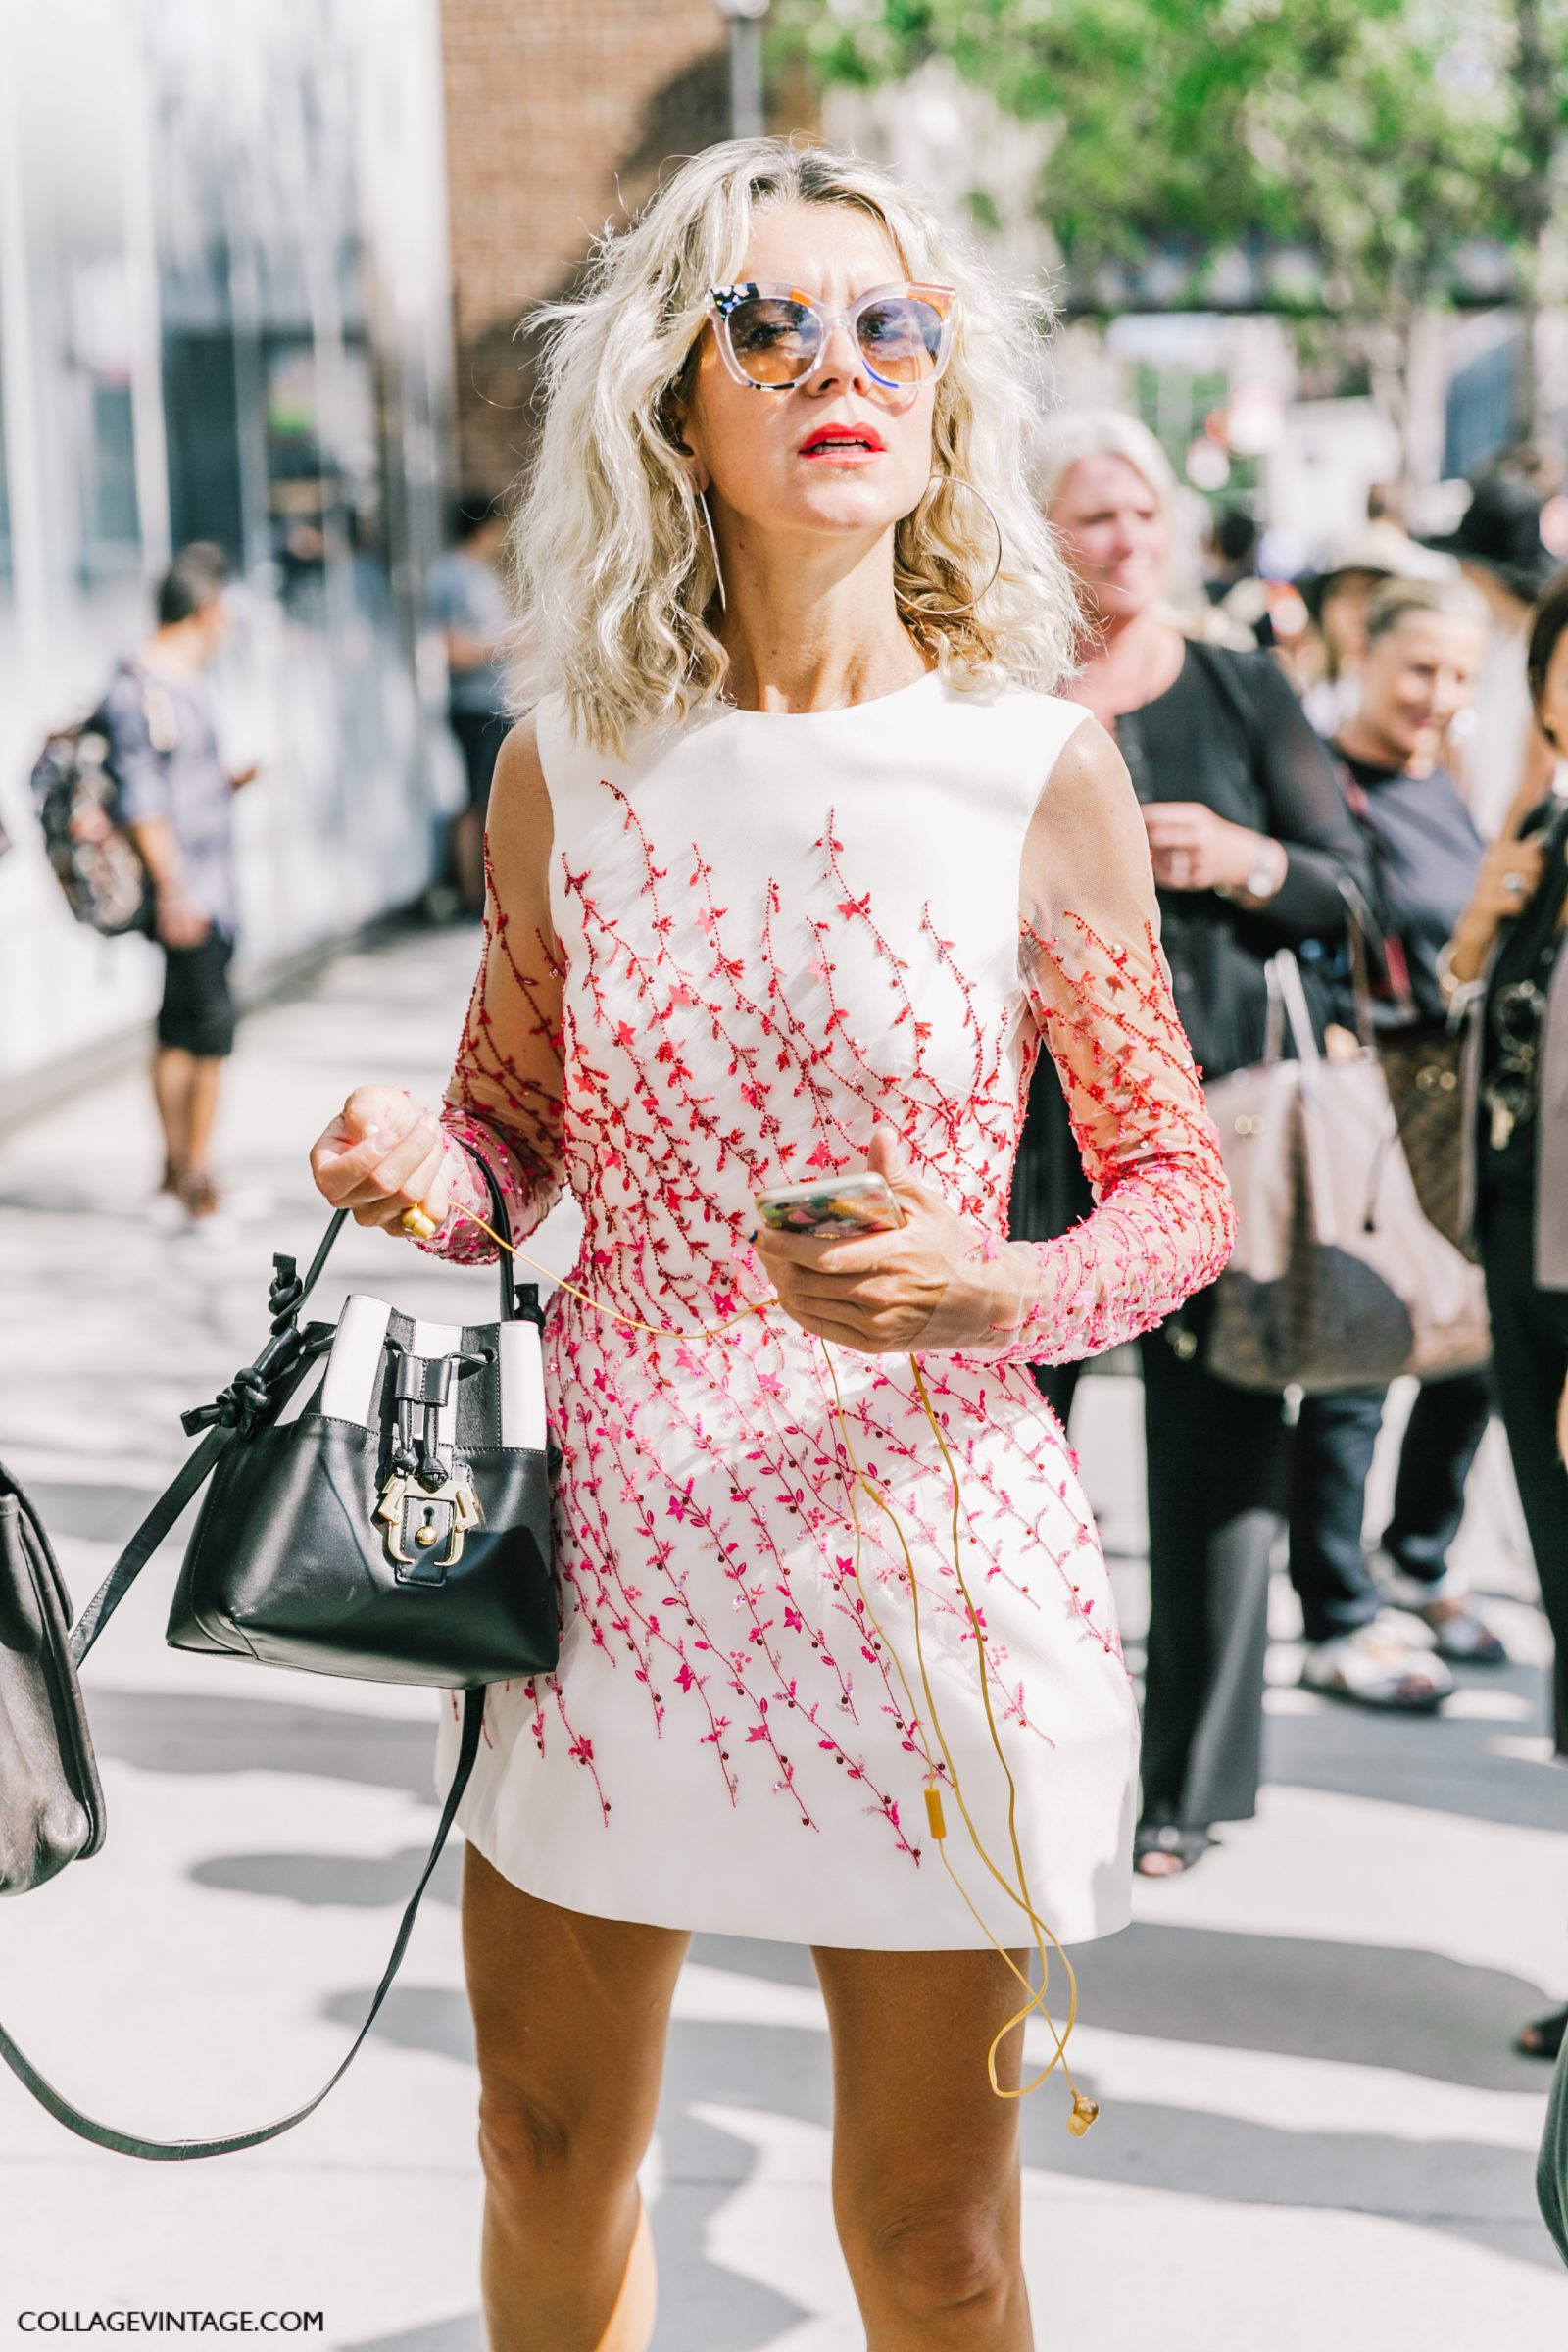 nyfw-new_york_fashion_week_ss17-street_style-outfits-collage_vintage-vintage-mansur_gavriel-rodarte-coach-120